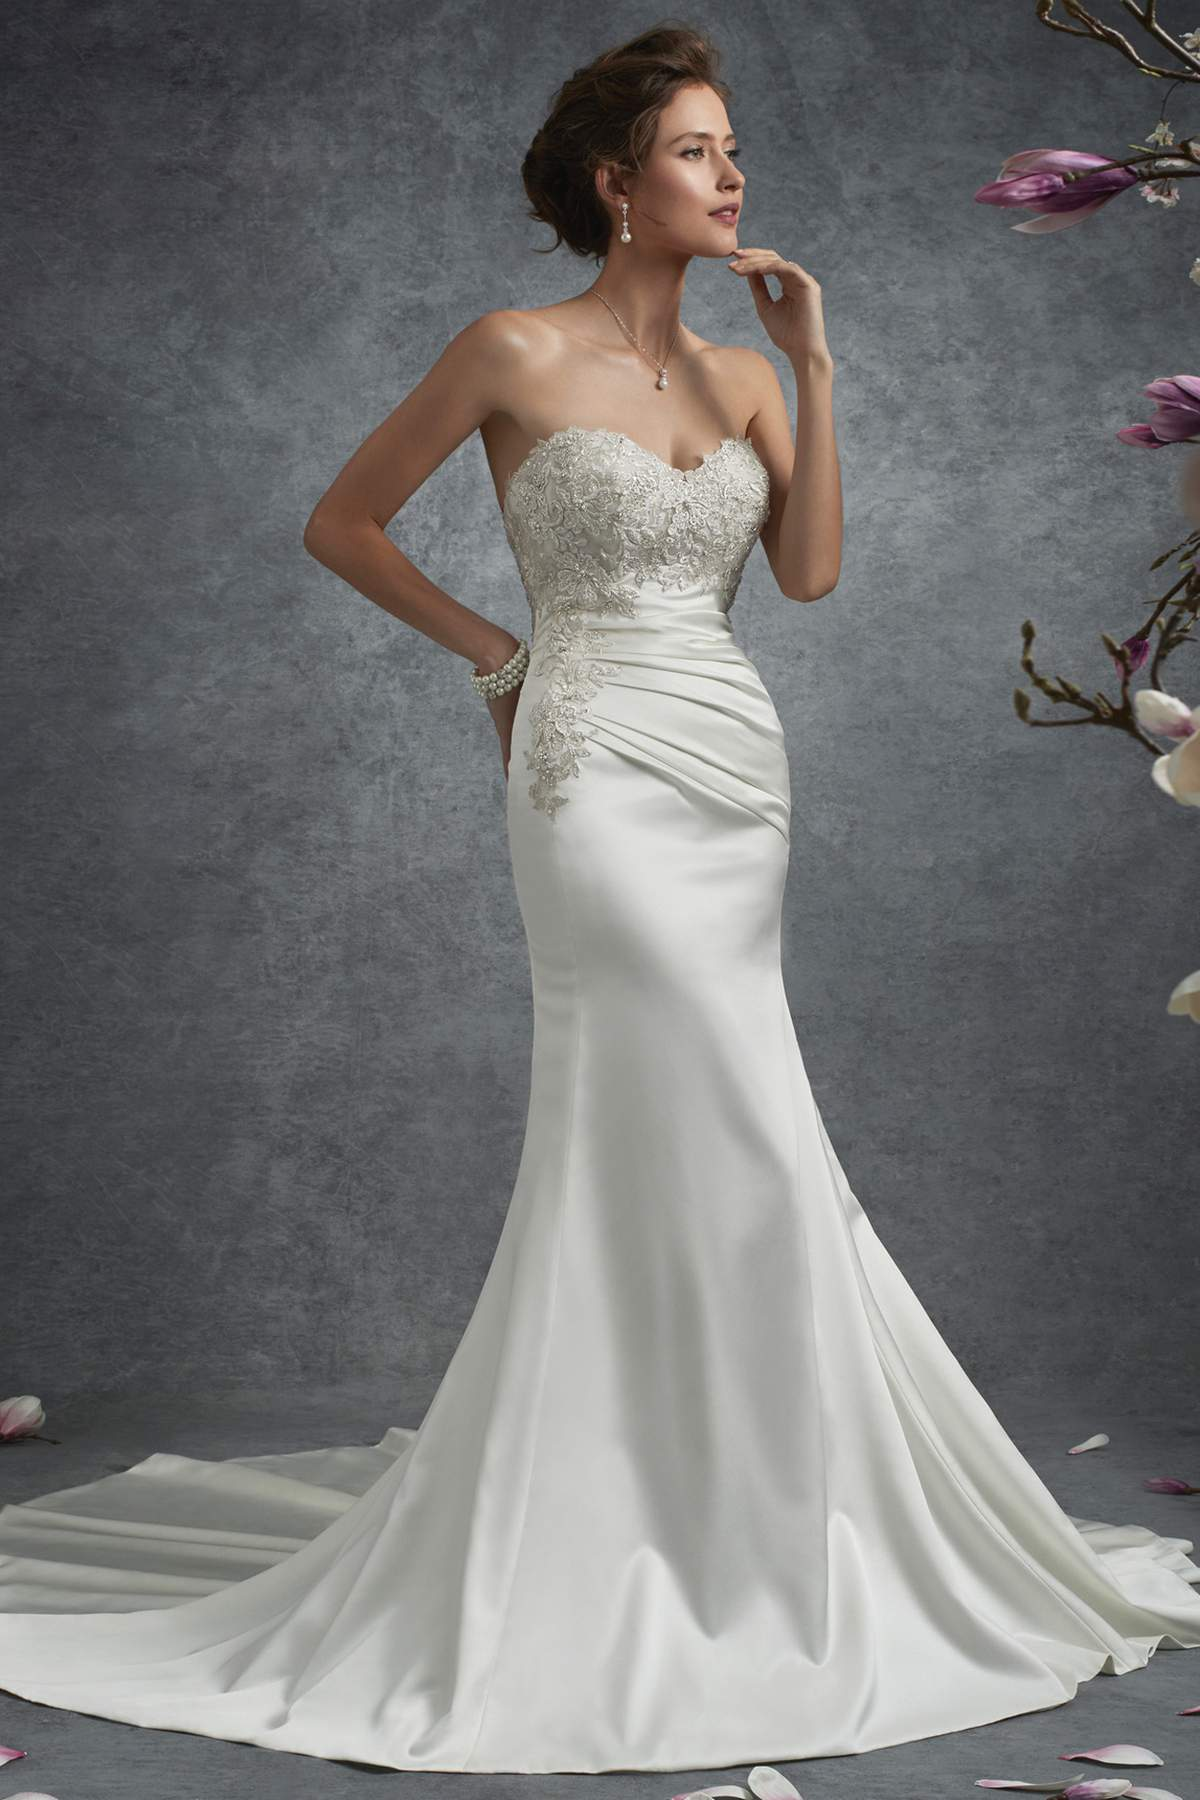 82edccbbe4e Style Y21744 Nebula by Sophia Tolli - Find Your Dream Dress